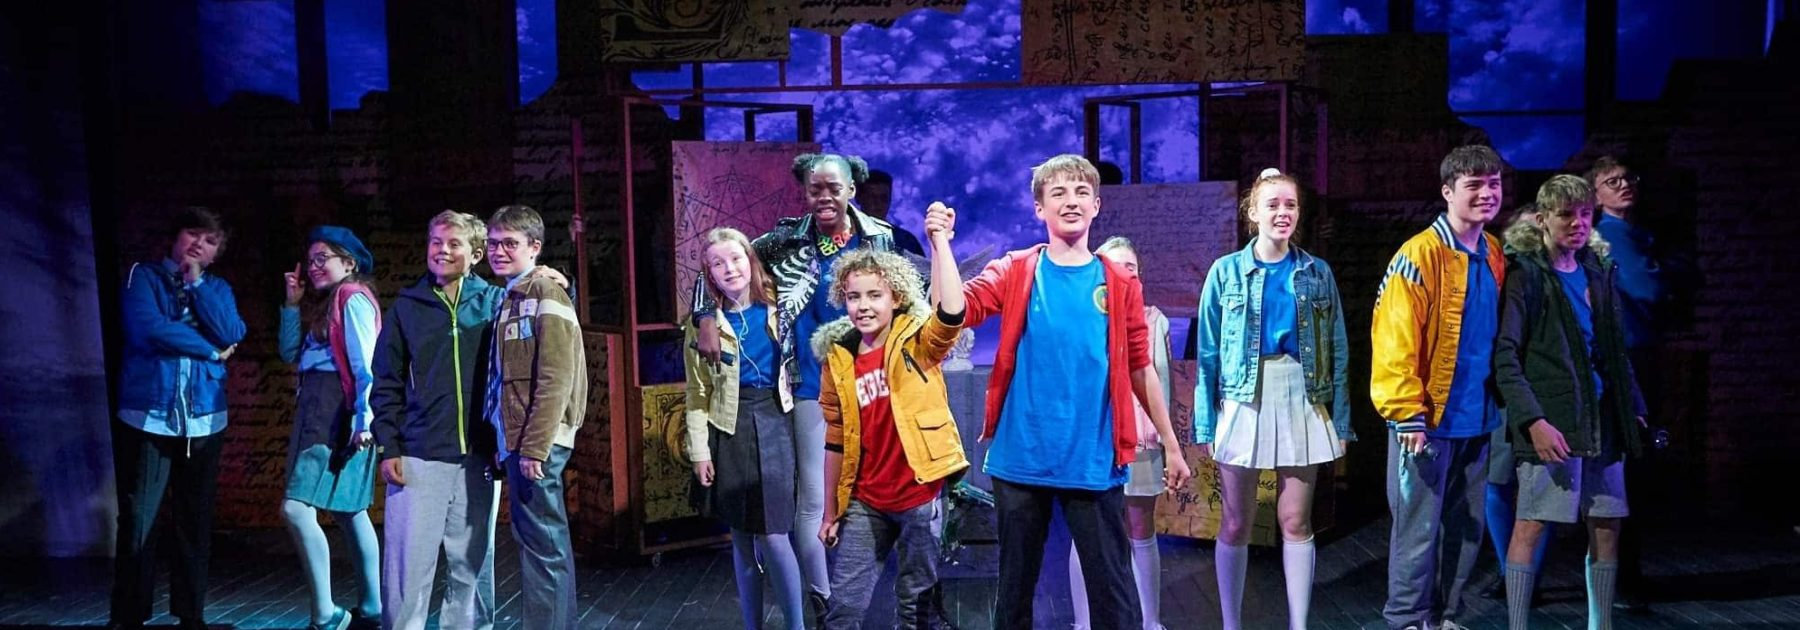 Leading Role at National Youth Theatre